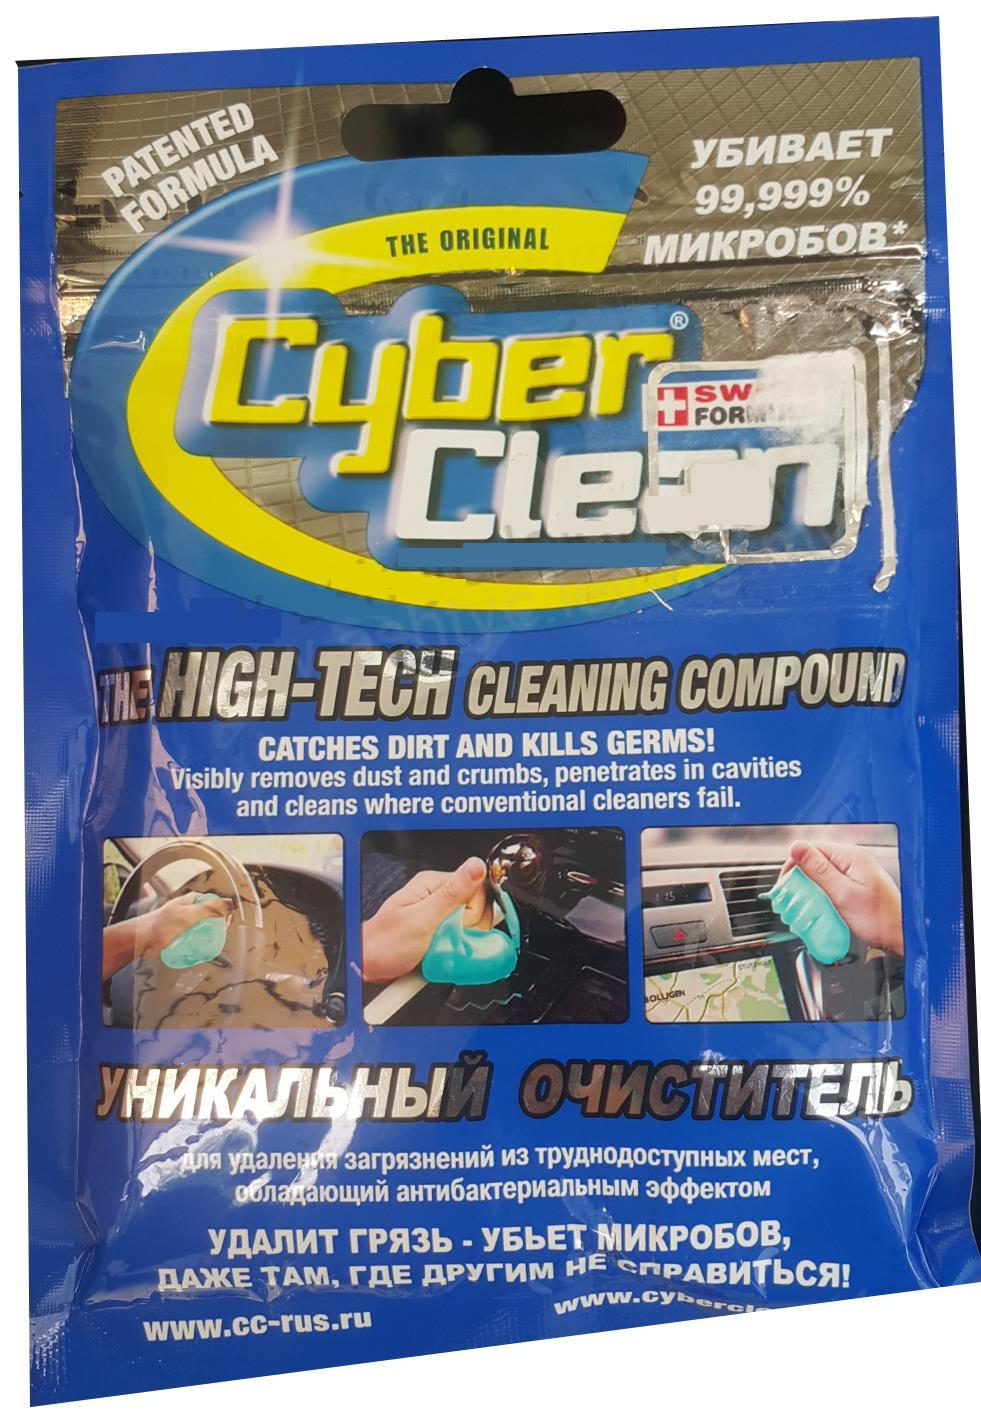 CYBERCLEAN CLEANING COMPOUND 80G BLUE FOR CAR